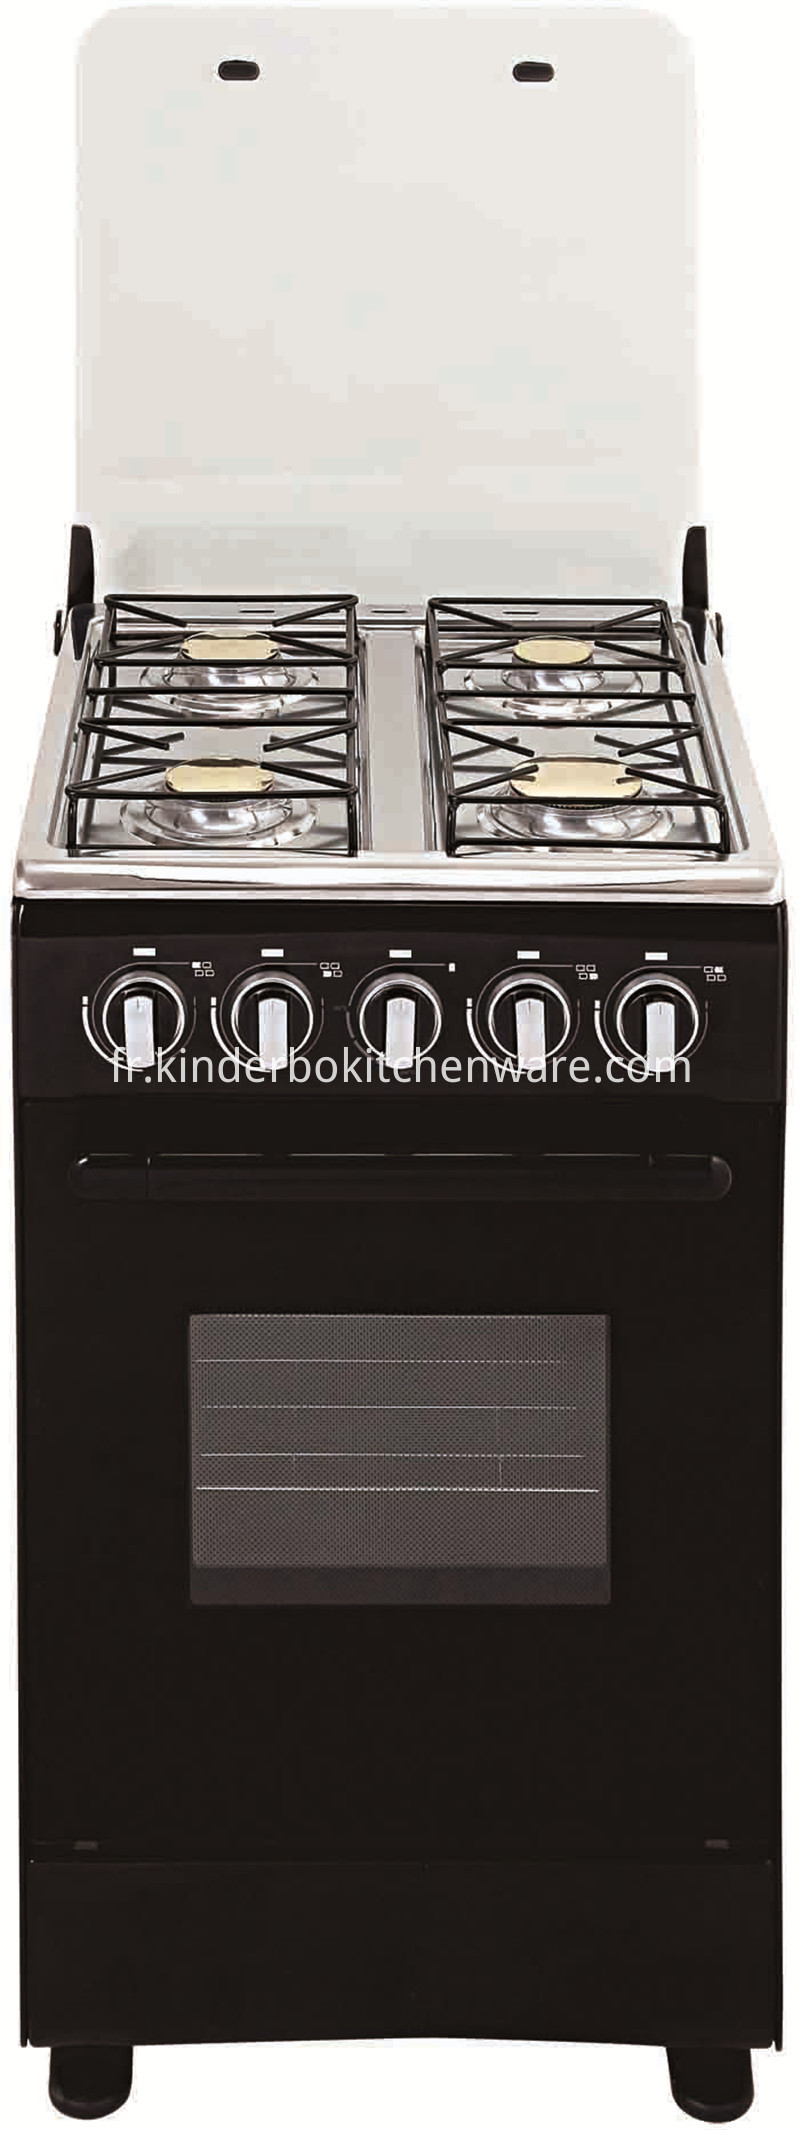 Gas Stove with Gas Oven Freestanding Gascooker Gas Range Cooker